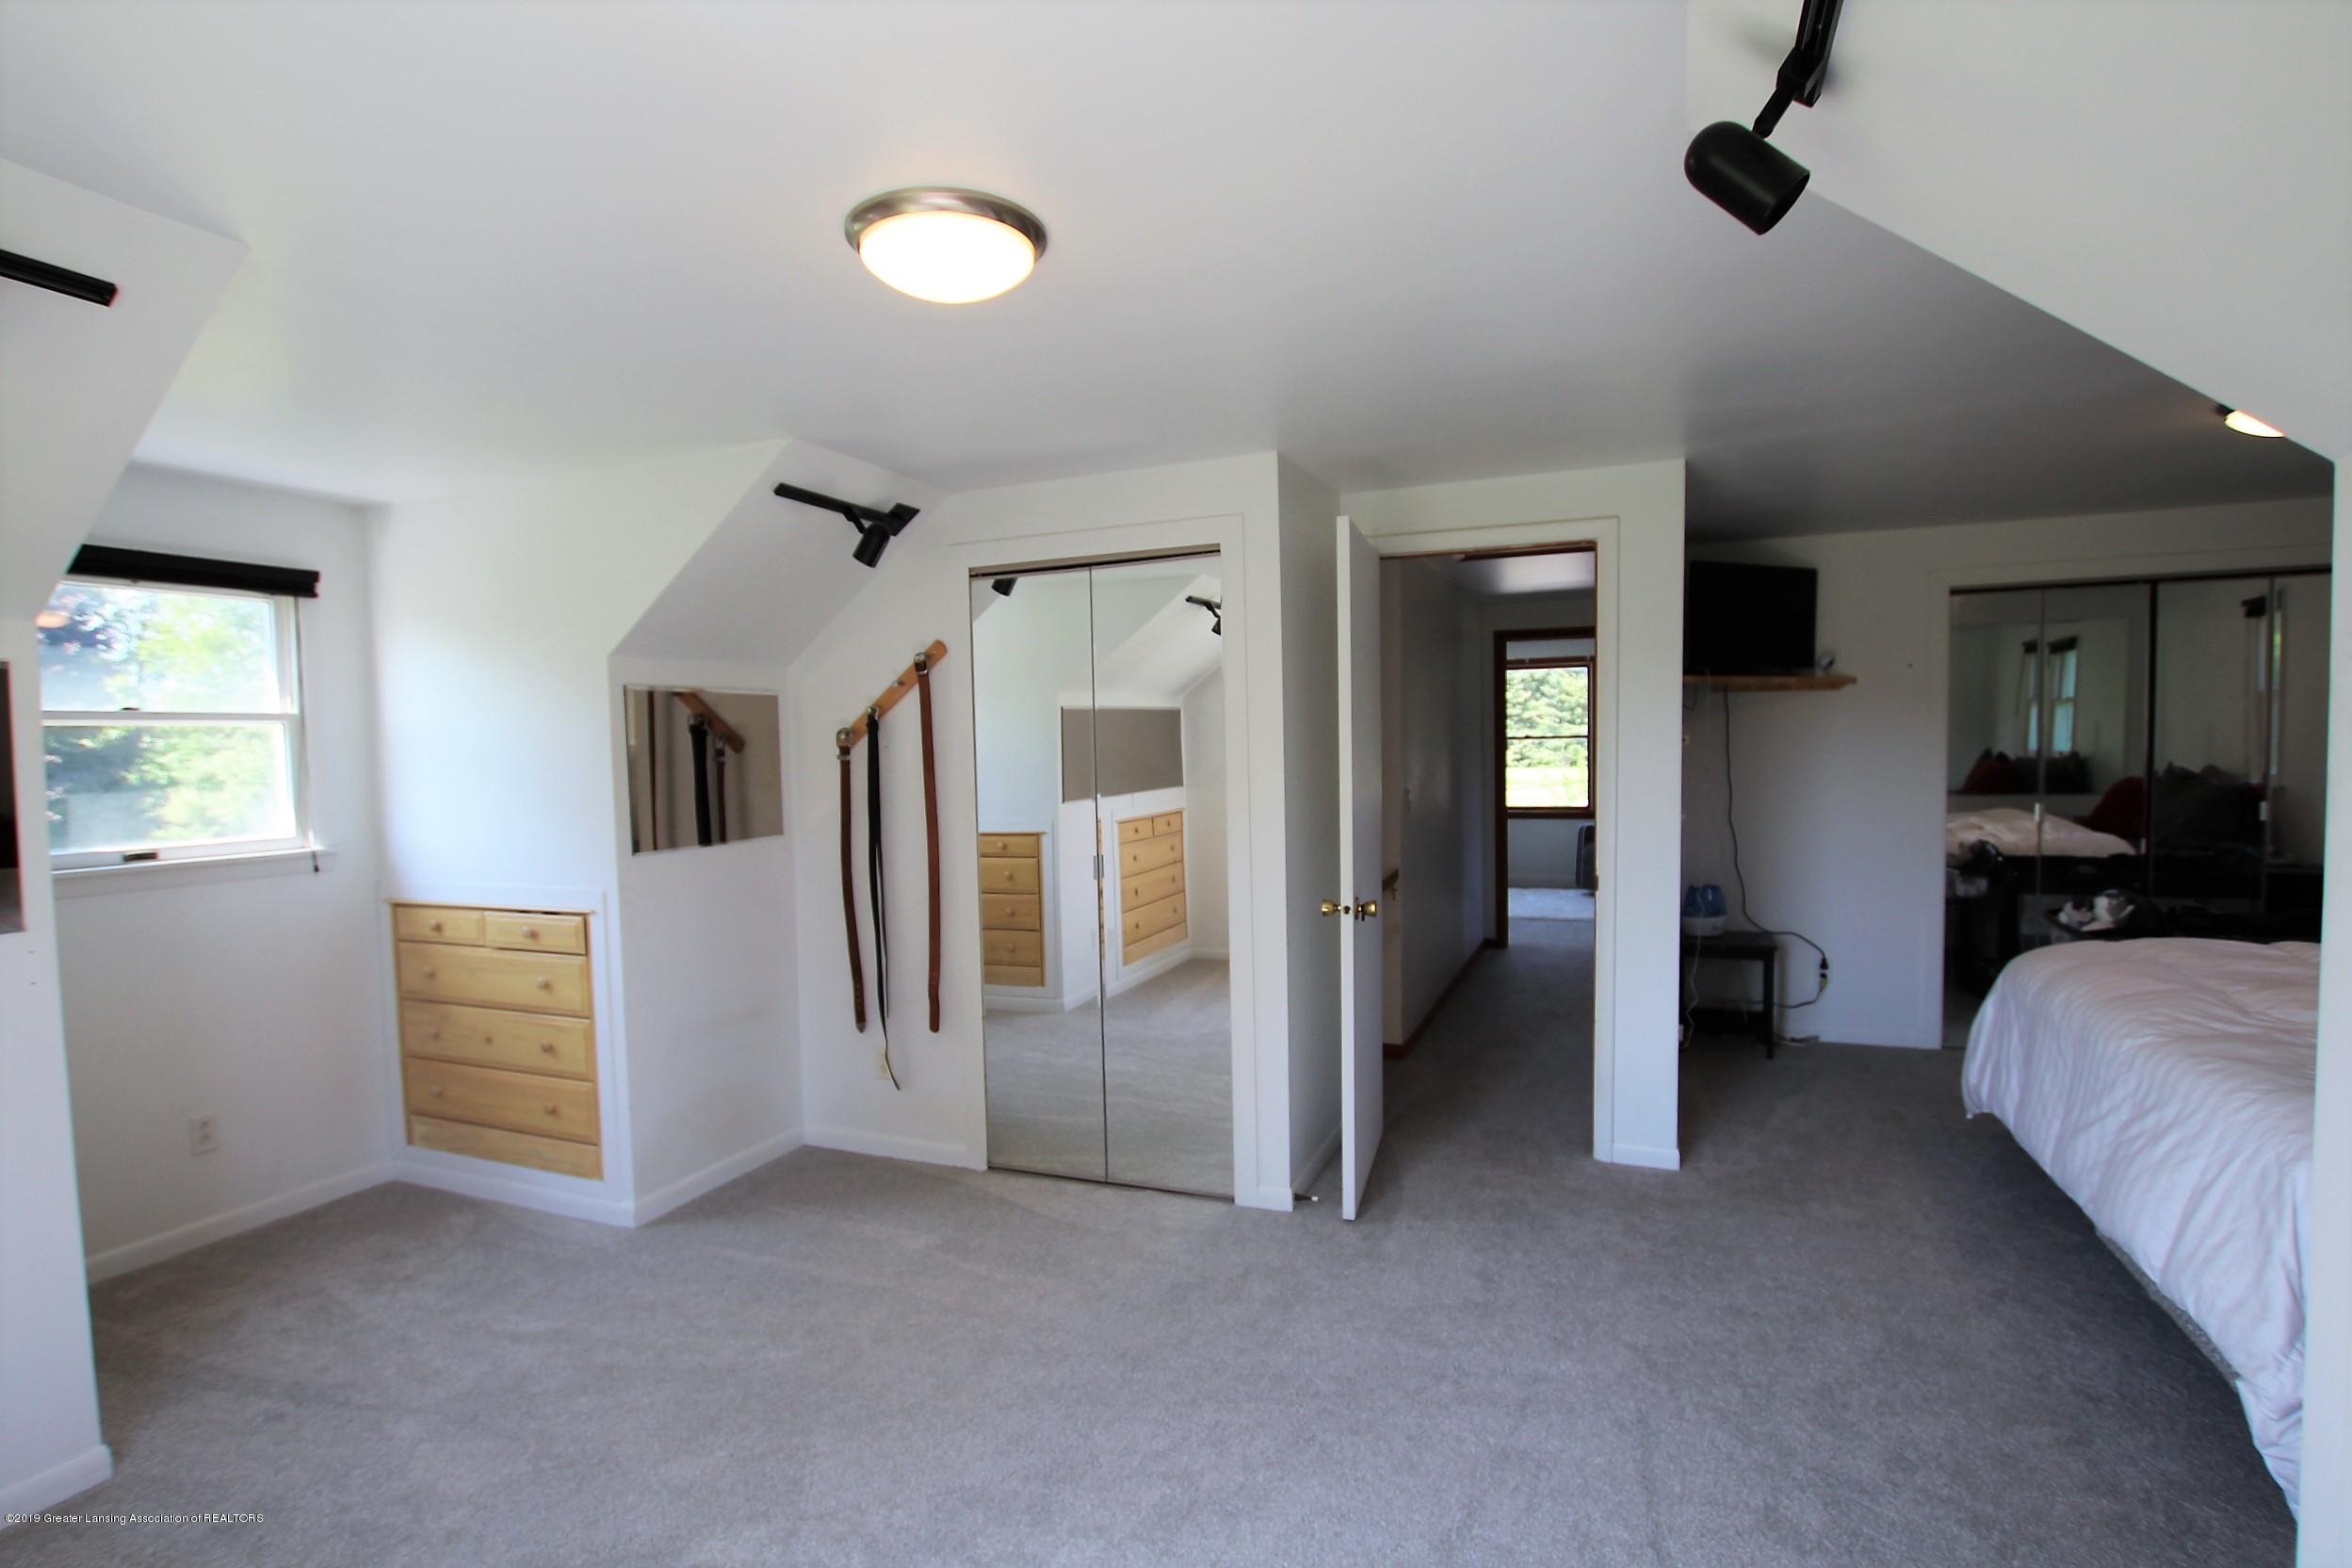 8500 Woodbury Rd - Bedroom - 32